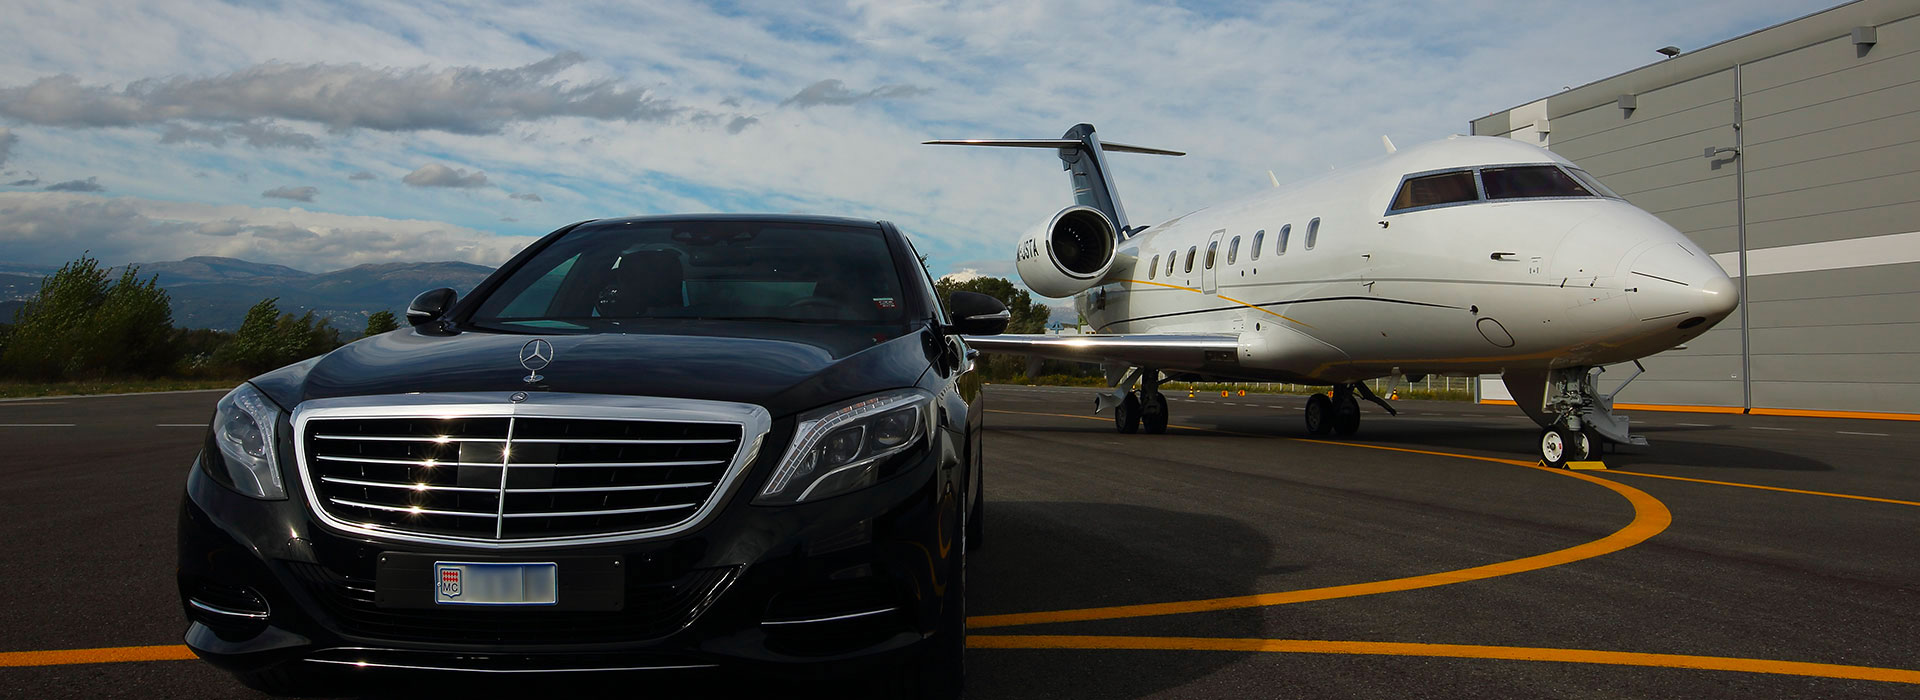 private aviation chauffeur Nice |